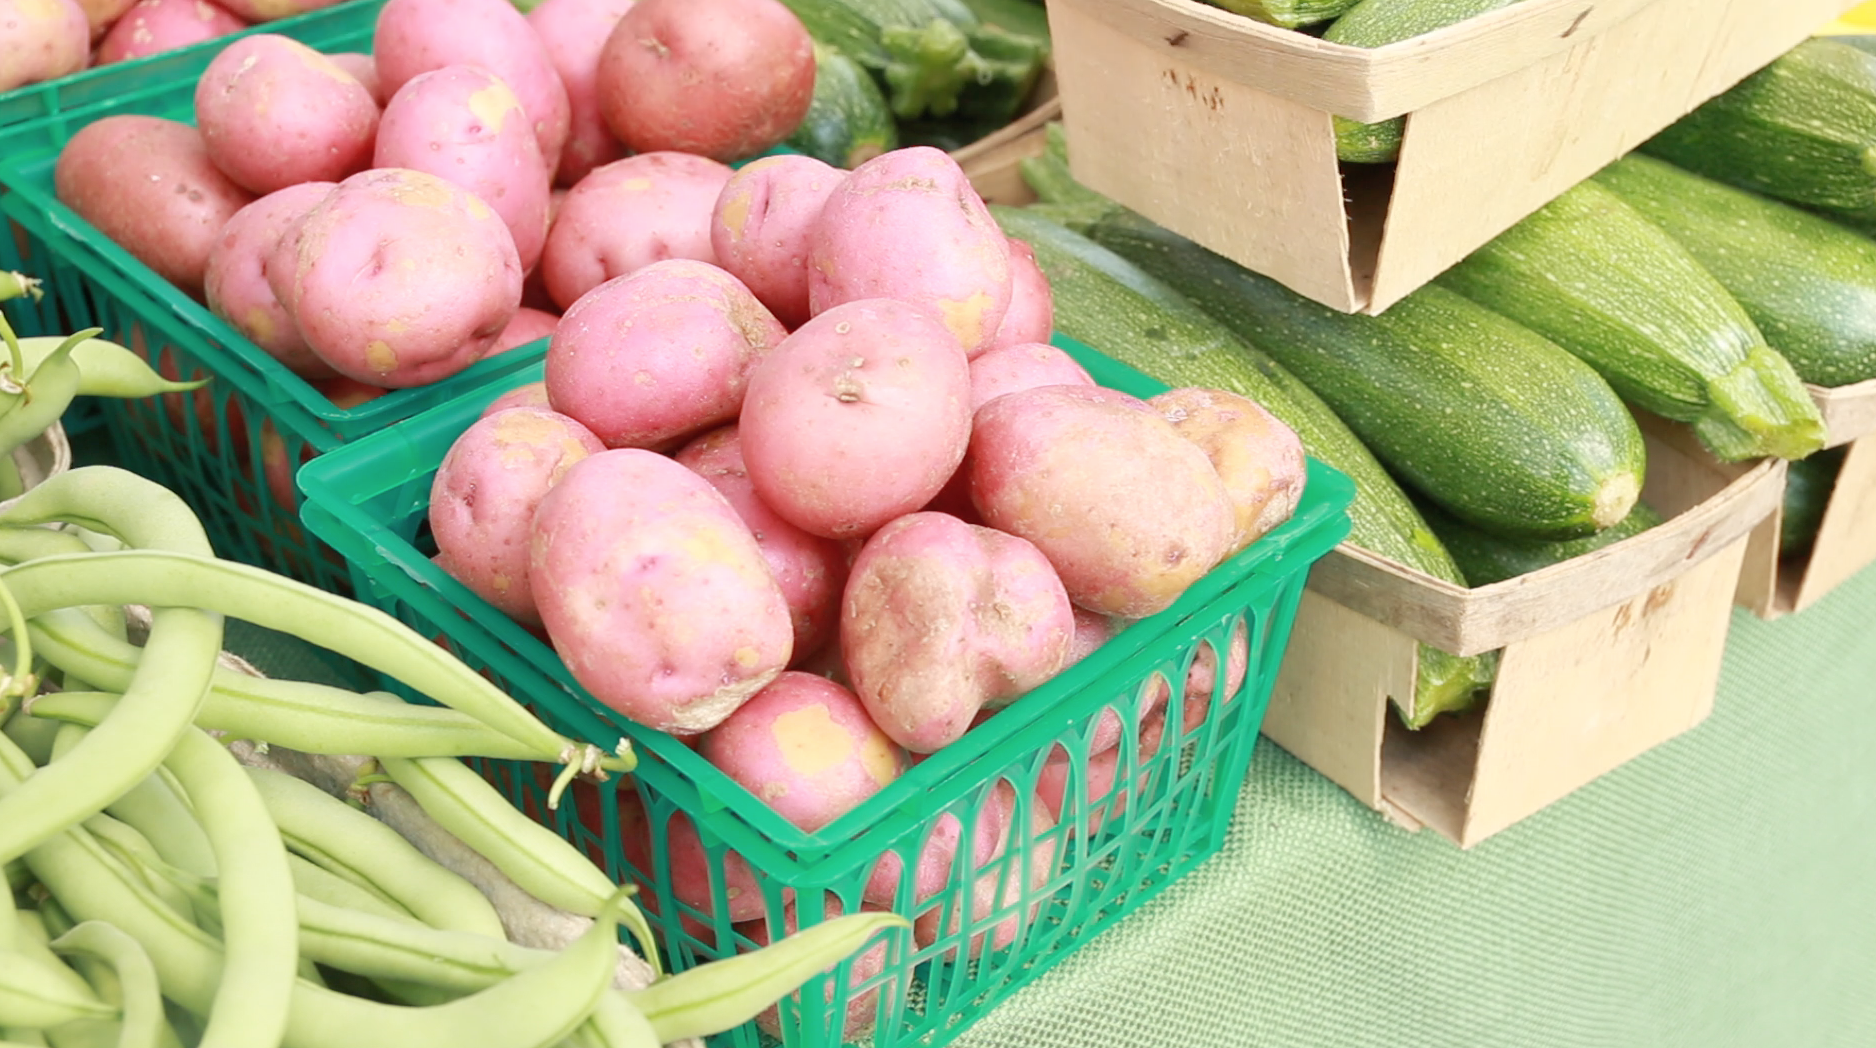 Potatoes, green beens and zucchini squash at a farmers market.